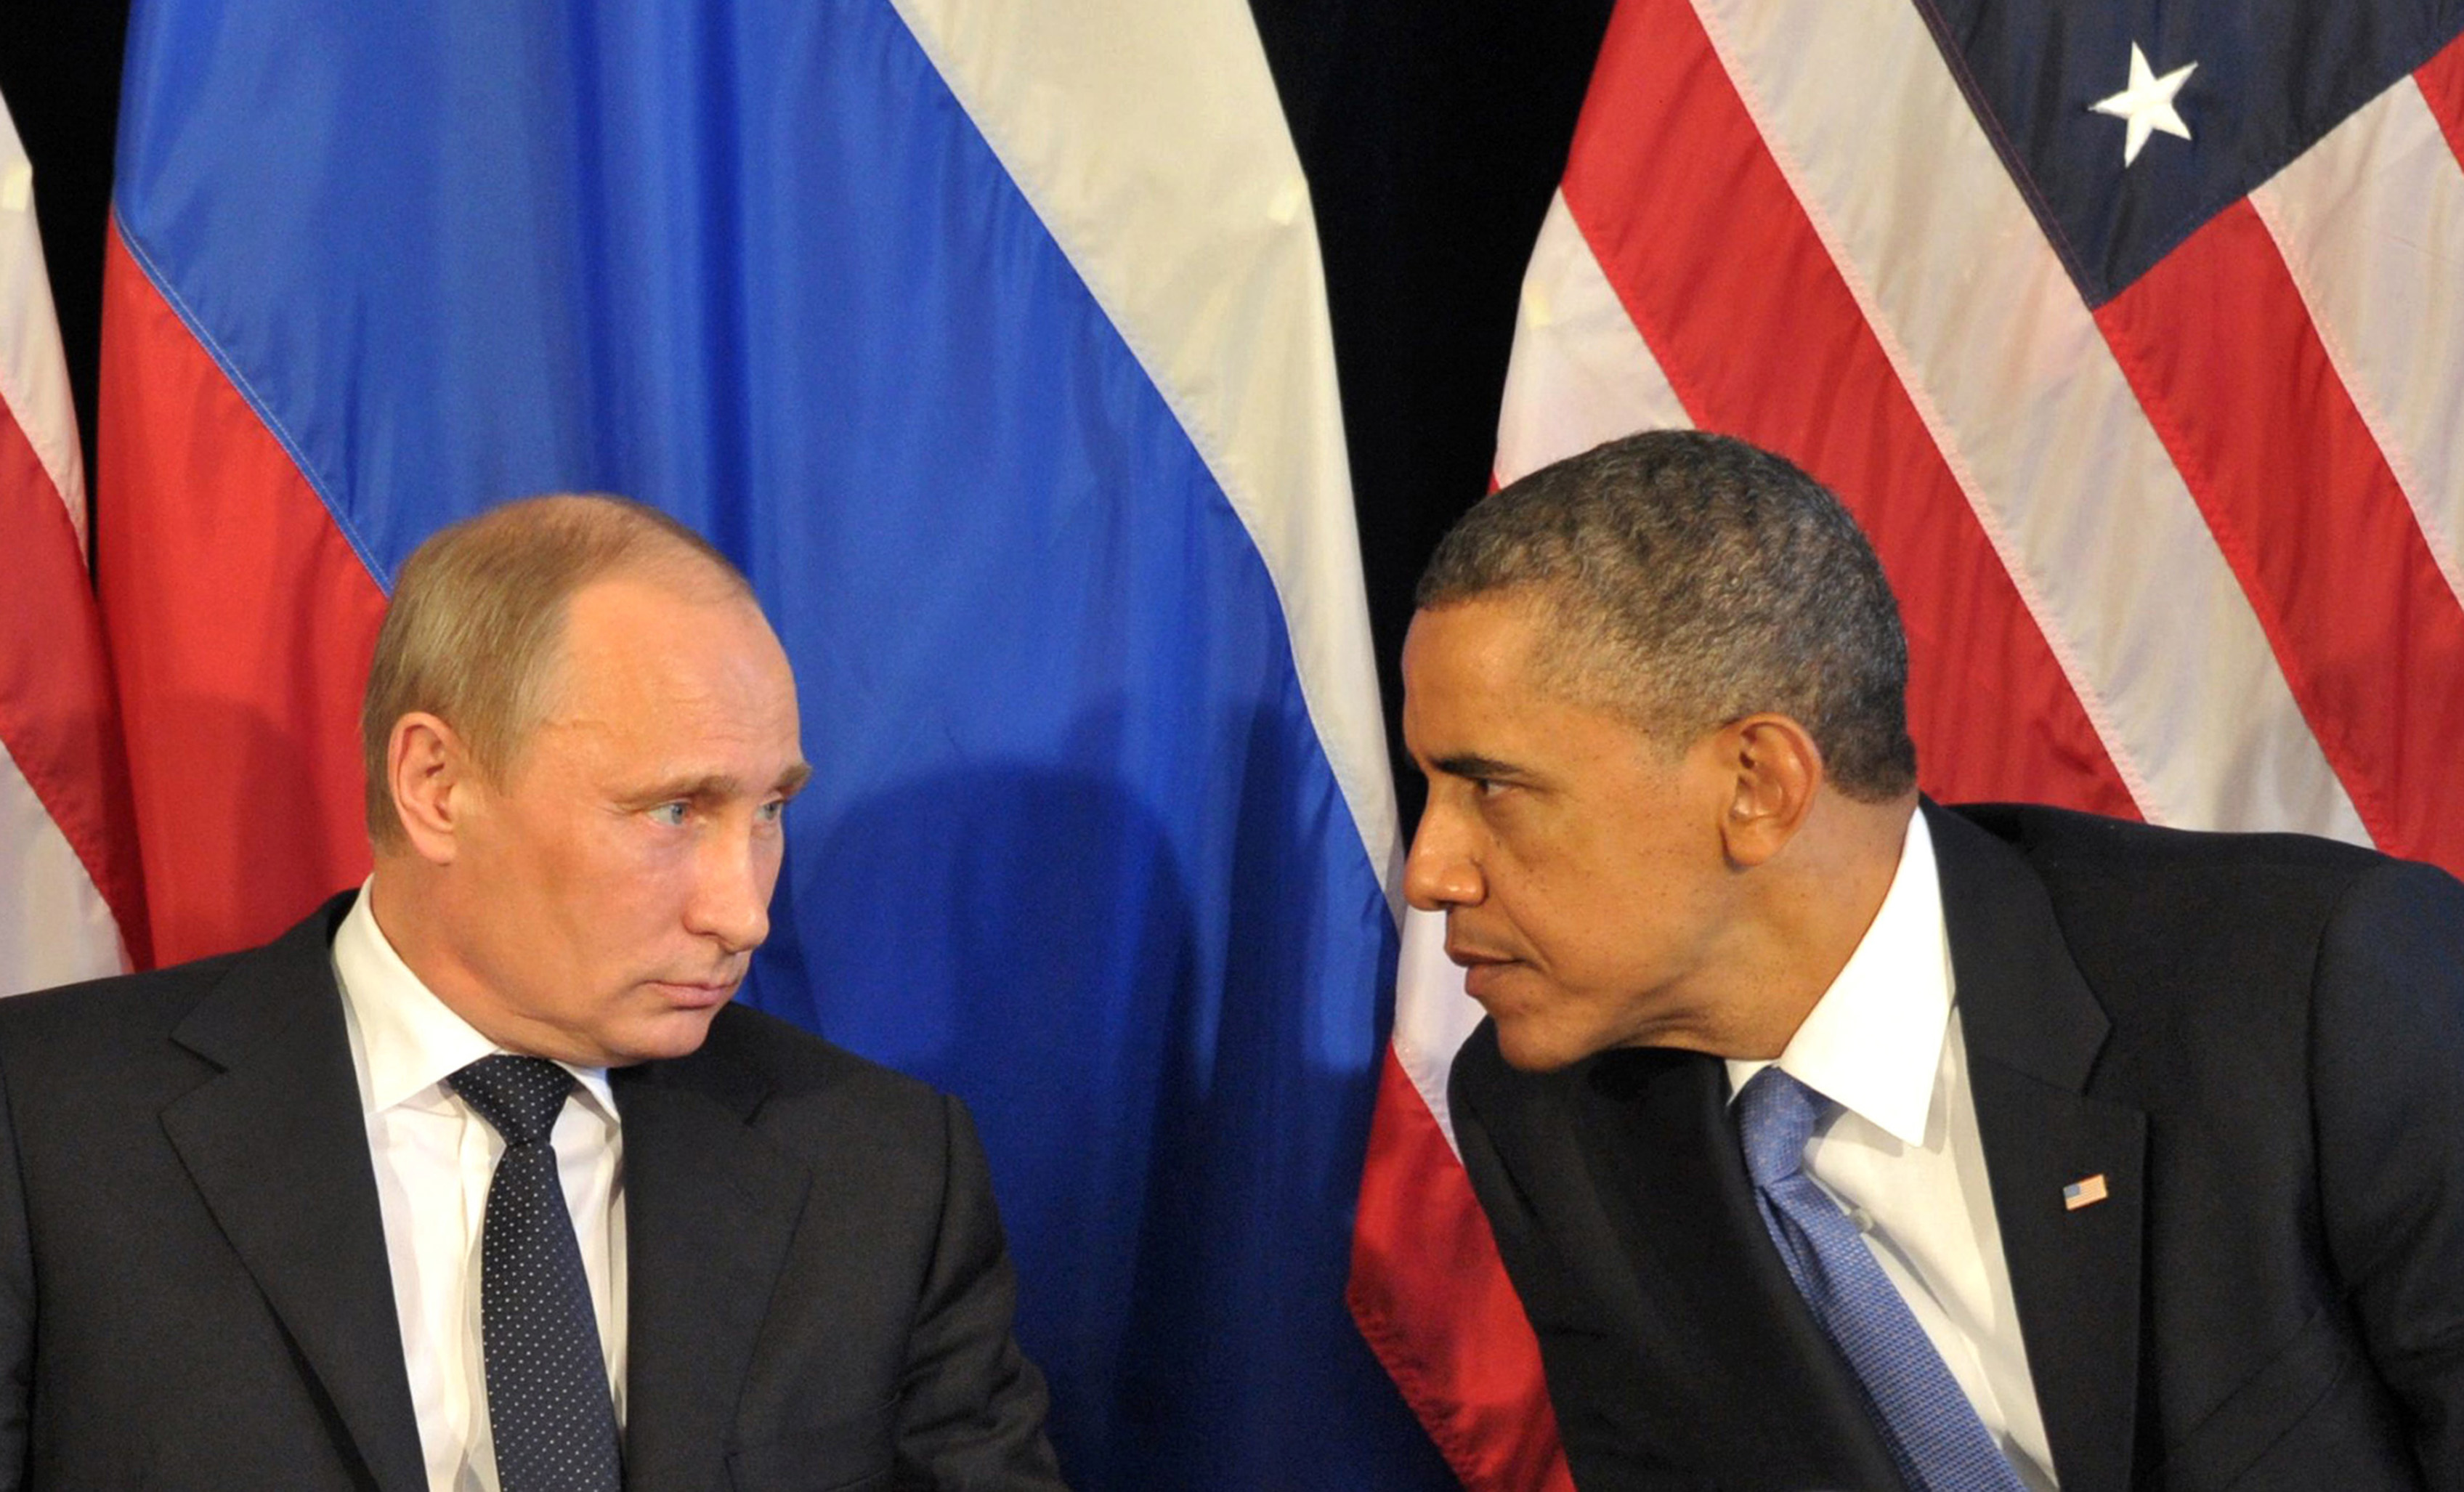 As Obama readies to visit Russia for G-20 summit, will he bypass Moscow?